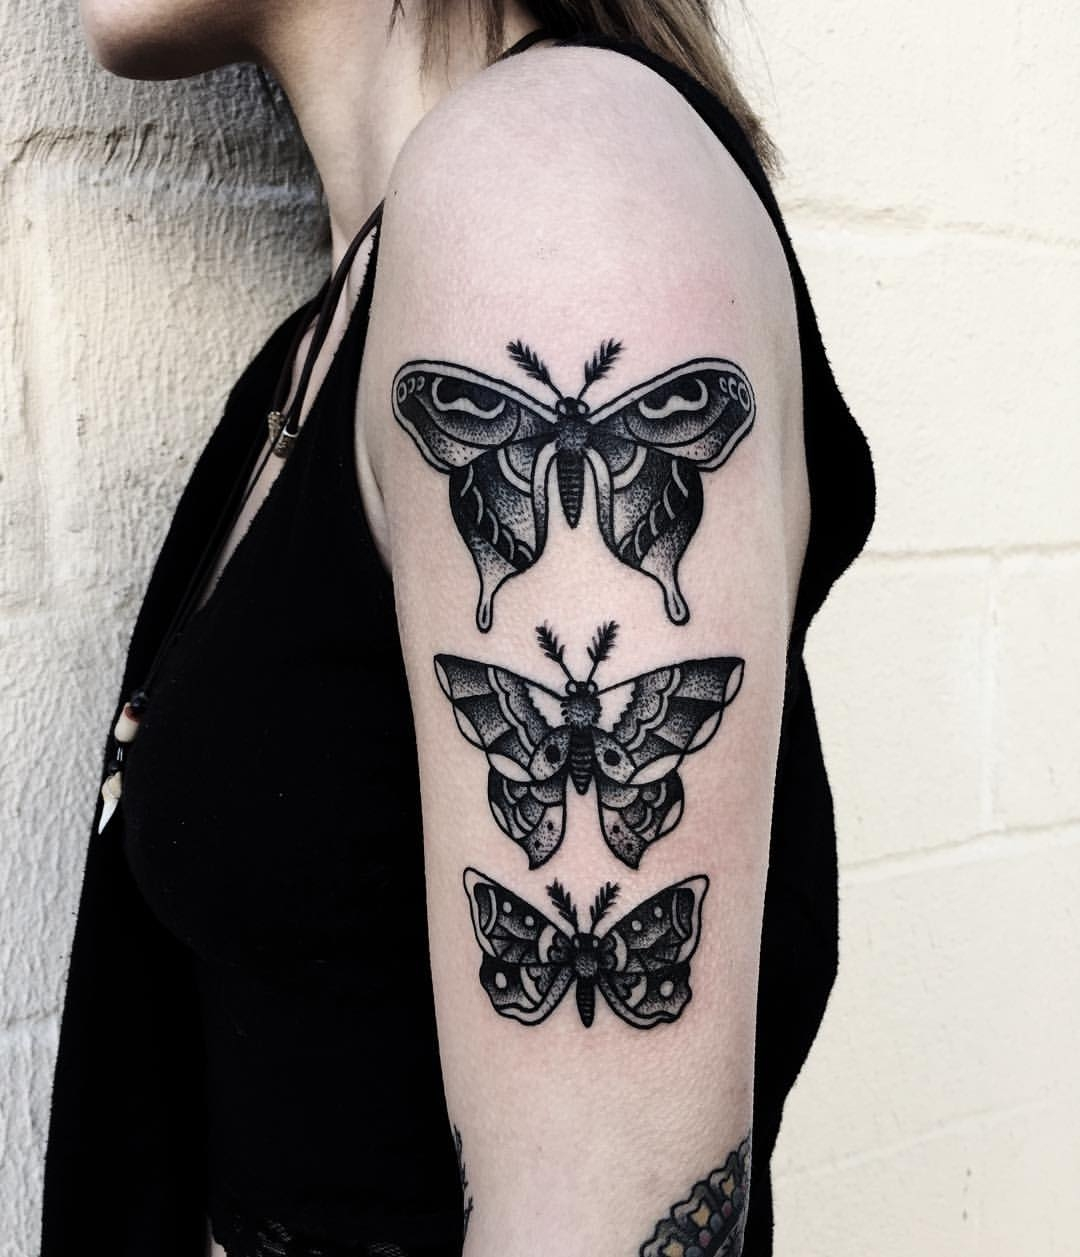 Dotwork and blackwork butterflies by Mike Adams